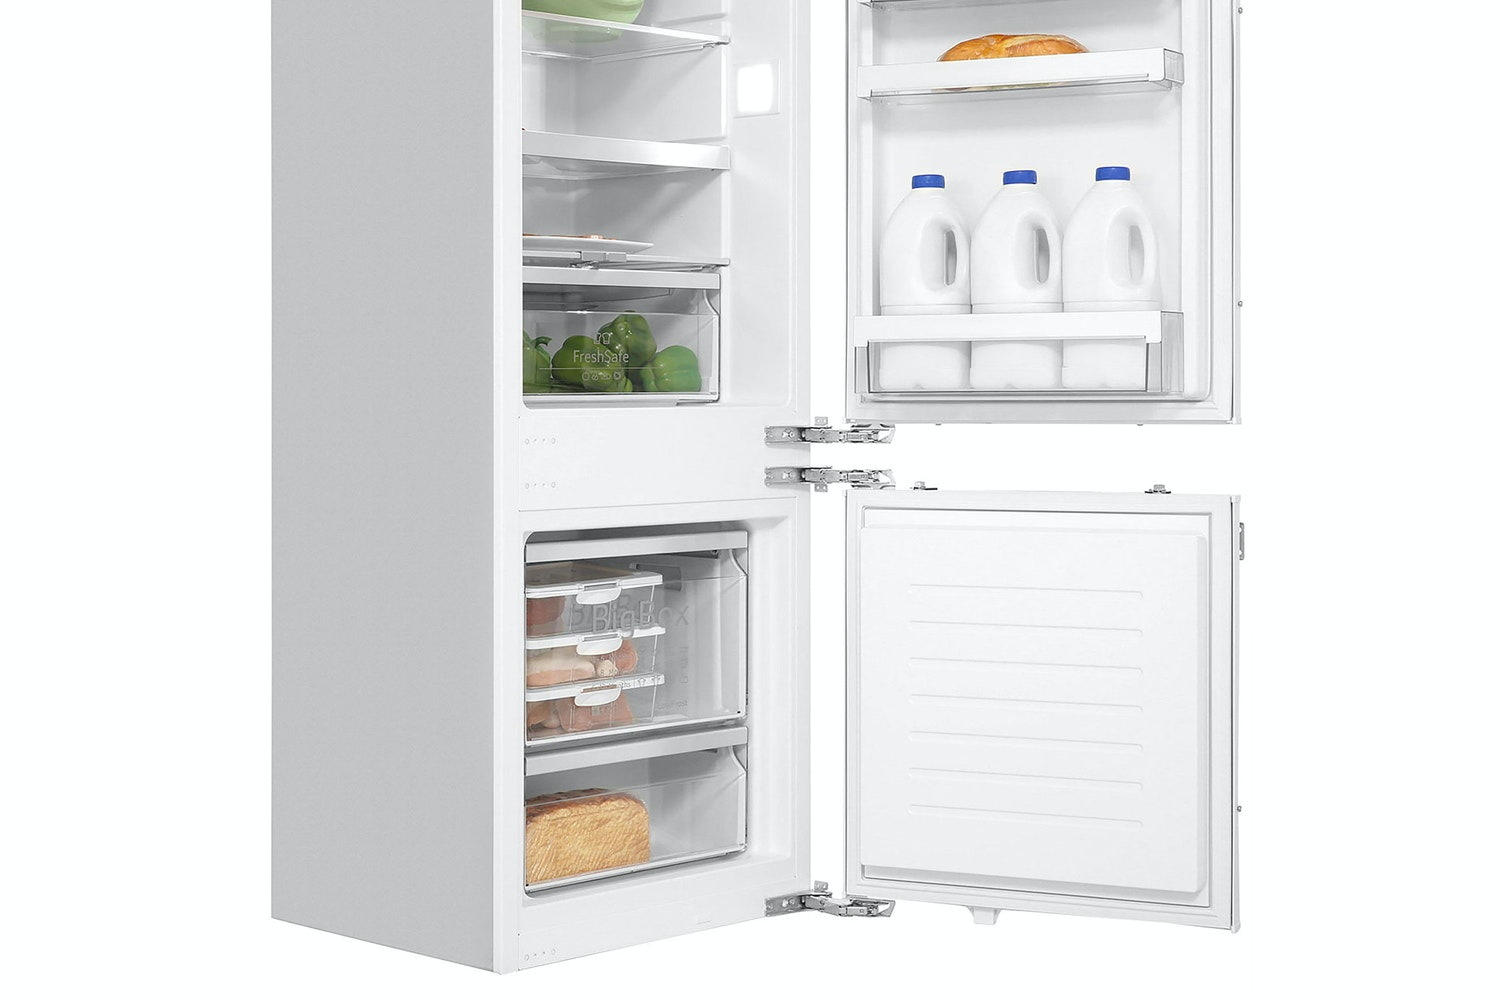 Neff Integrated Fridge Freezer |KI6873F30G